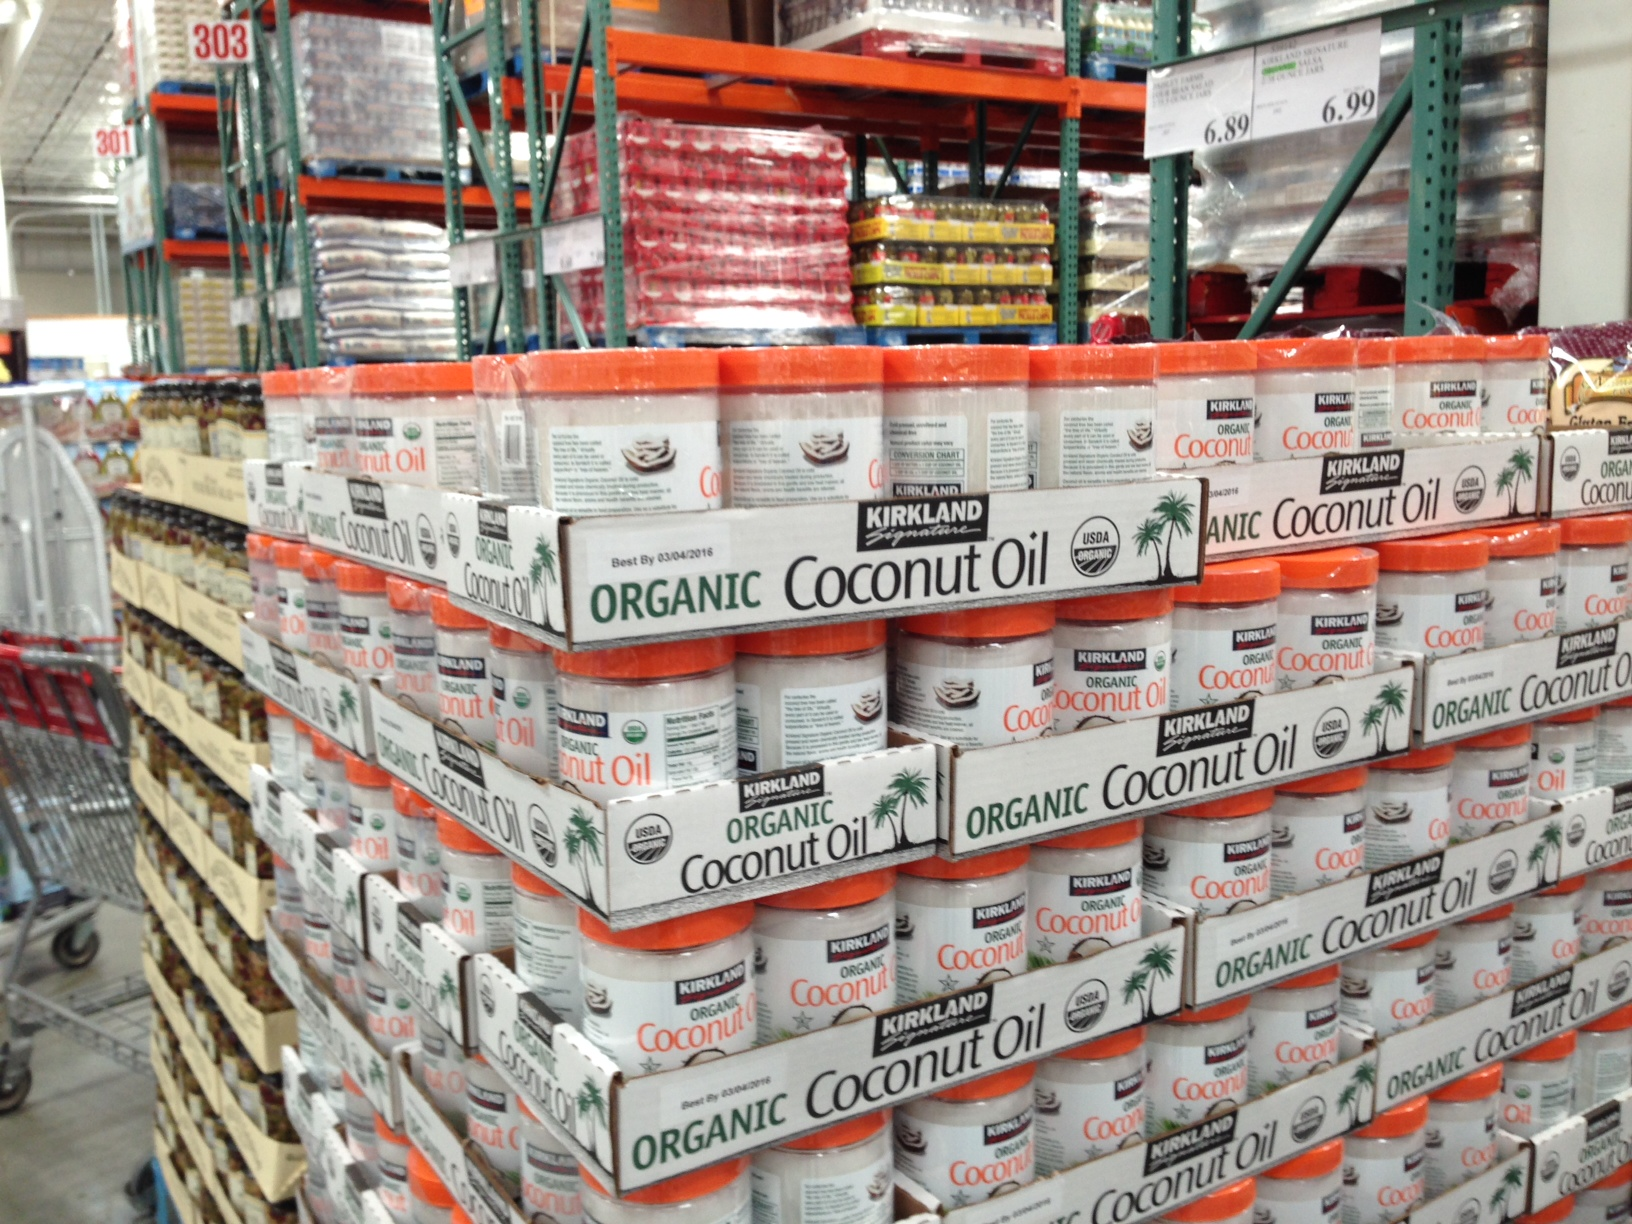 Costco Now Carries Its Own Brand of Coconut Oil